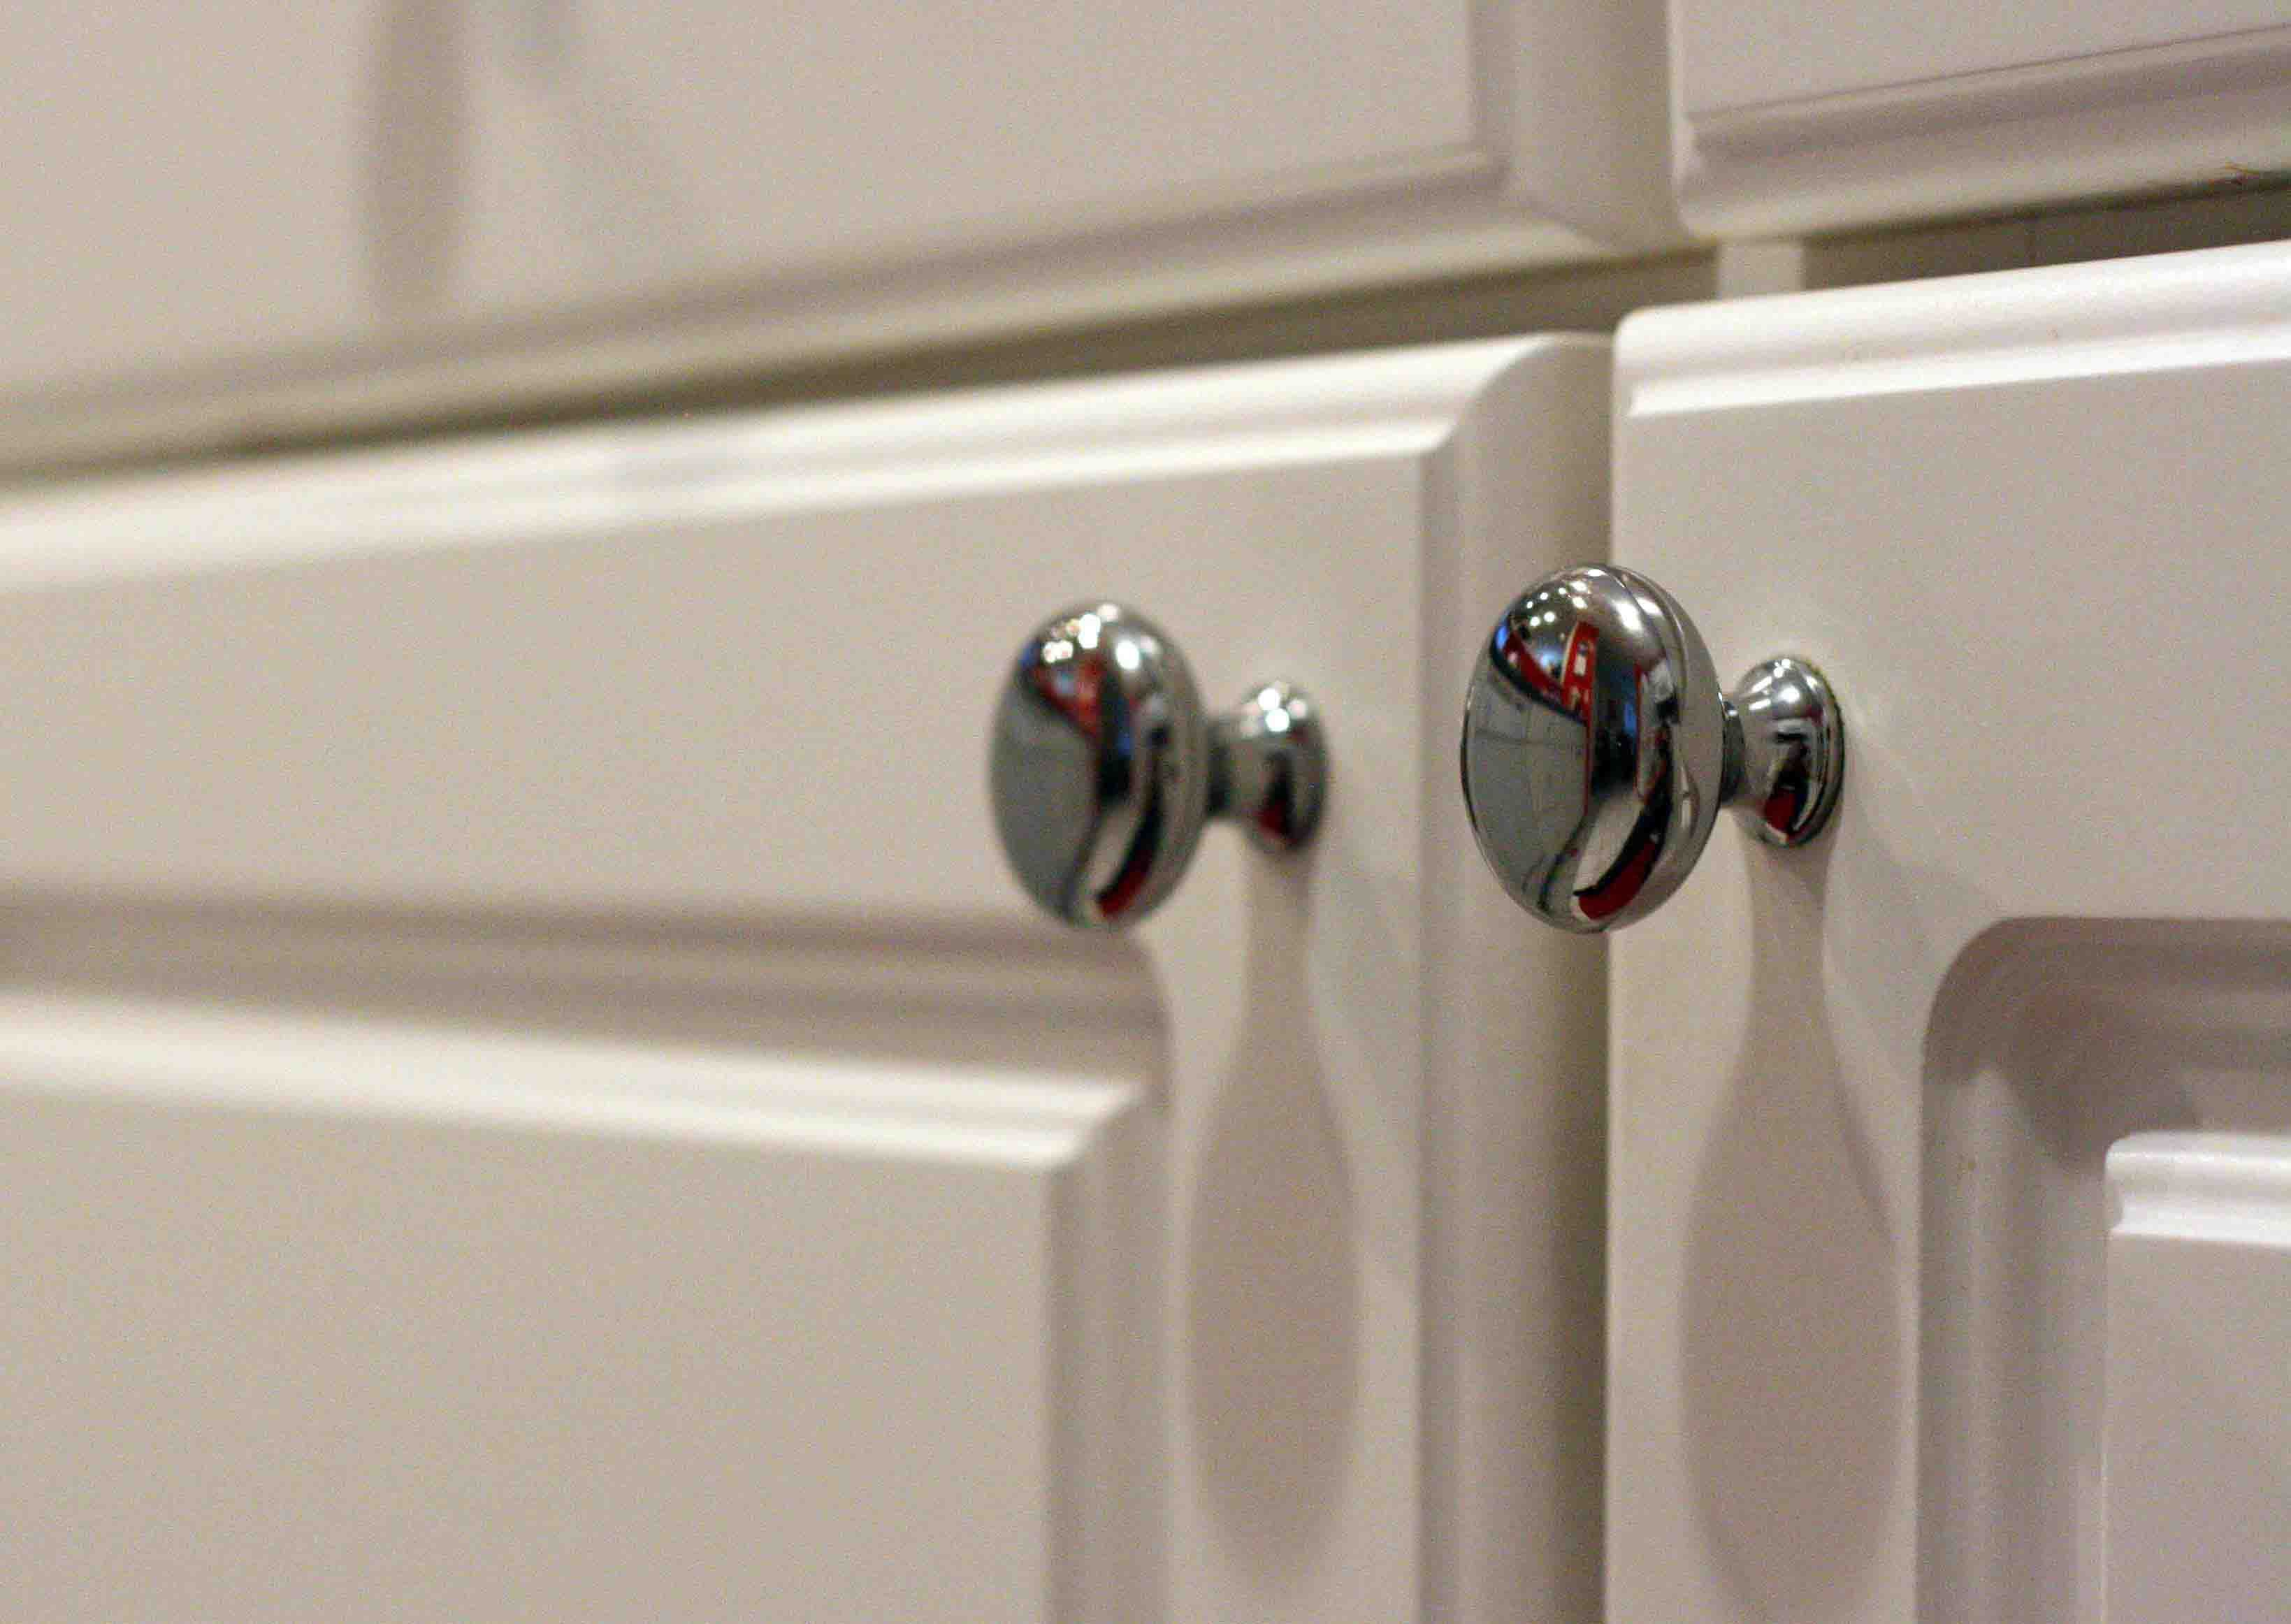 Guidance On How To Measure Round Cabinet Knob Location.